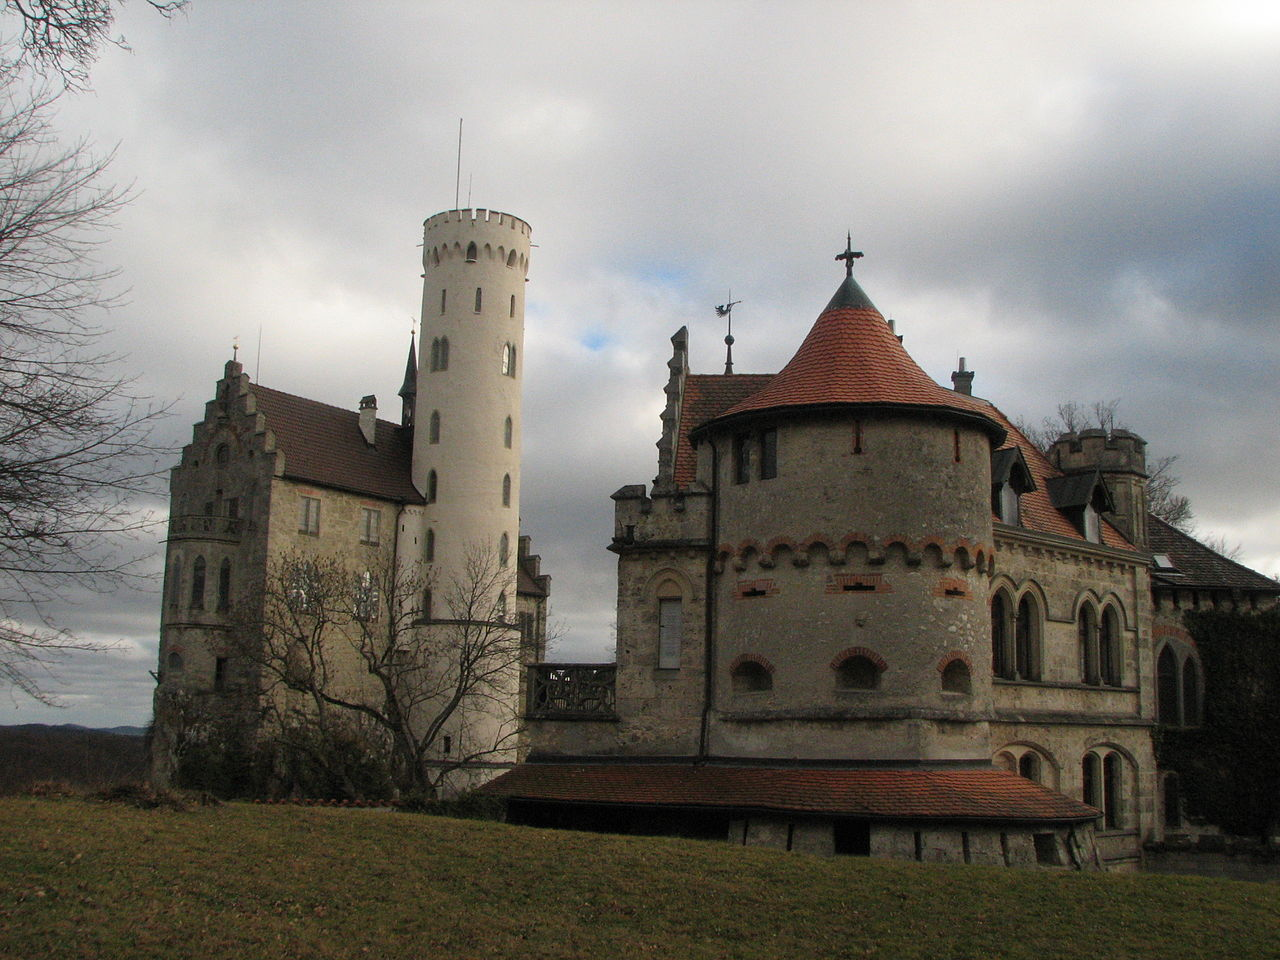 1280px-Lichtenstein_Castle,_January_2007,_05.jpg